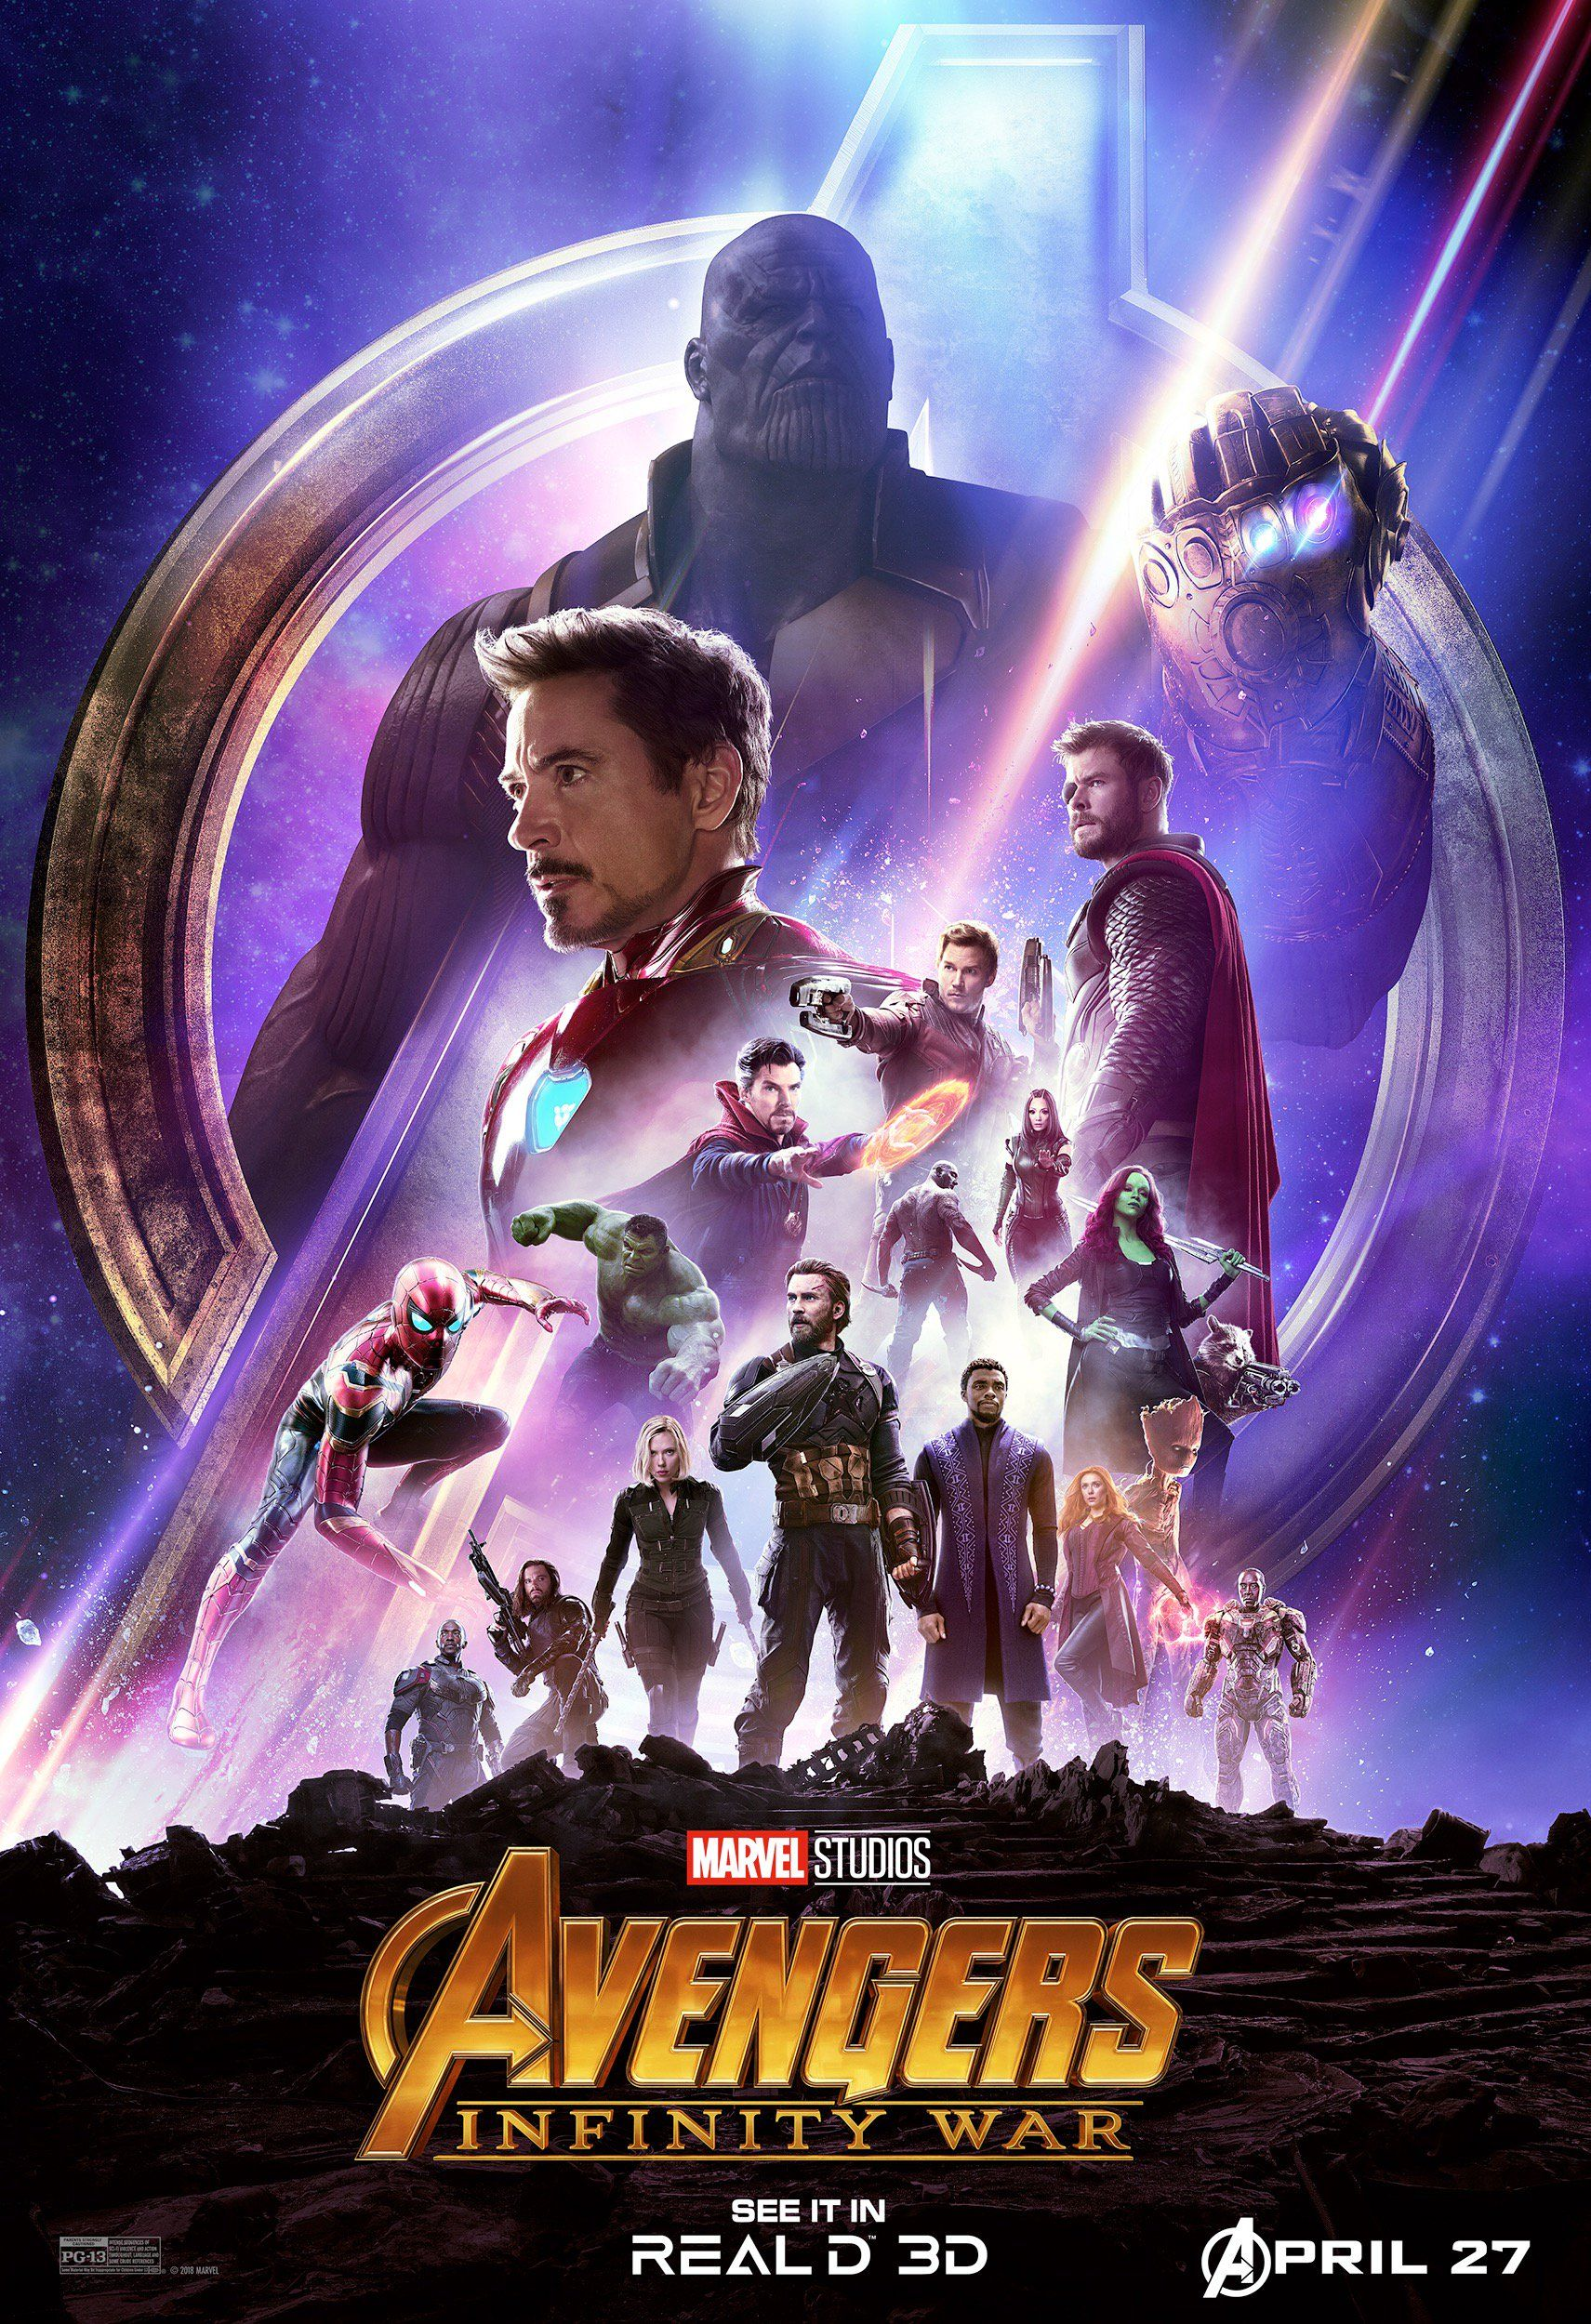 2 New Posters Revealed For AVENGERS: INFINITY WAR and New